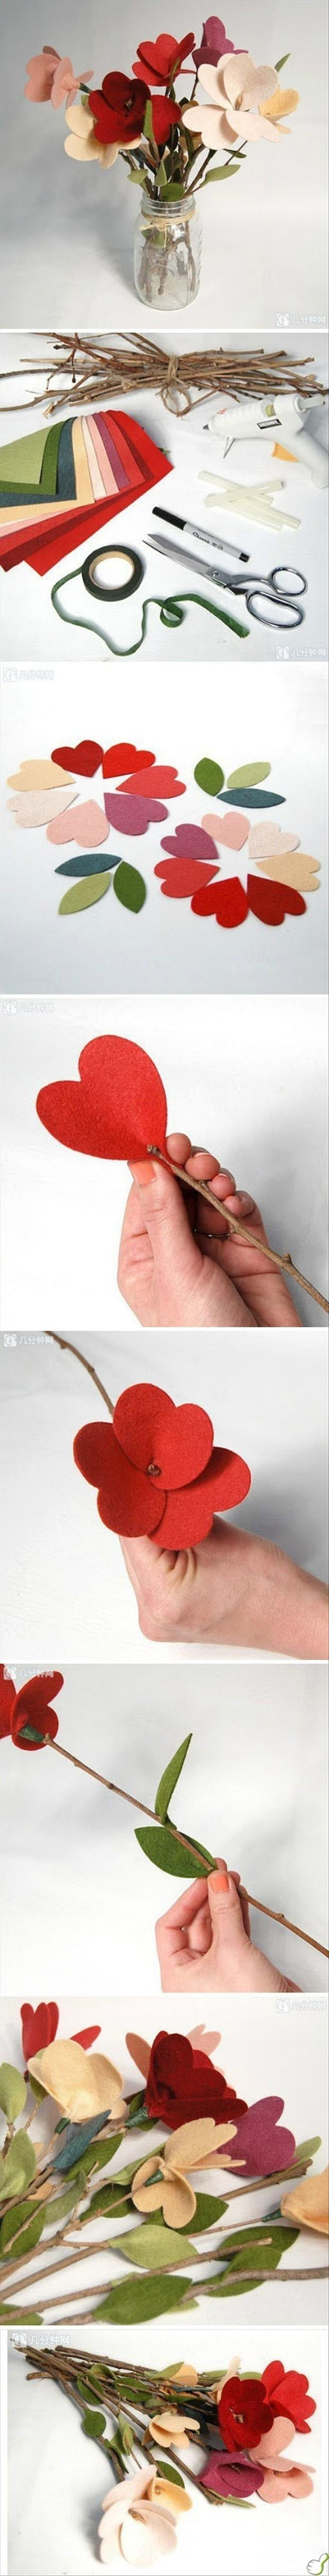 how to make fake flowers,